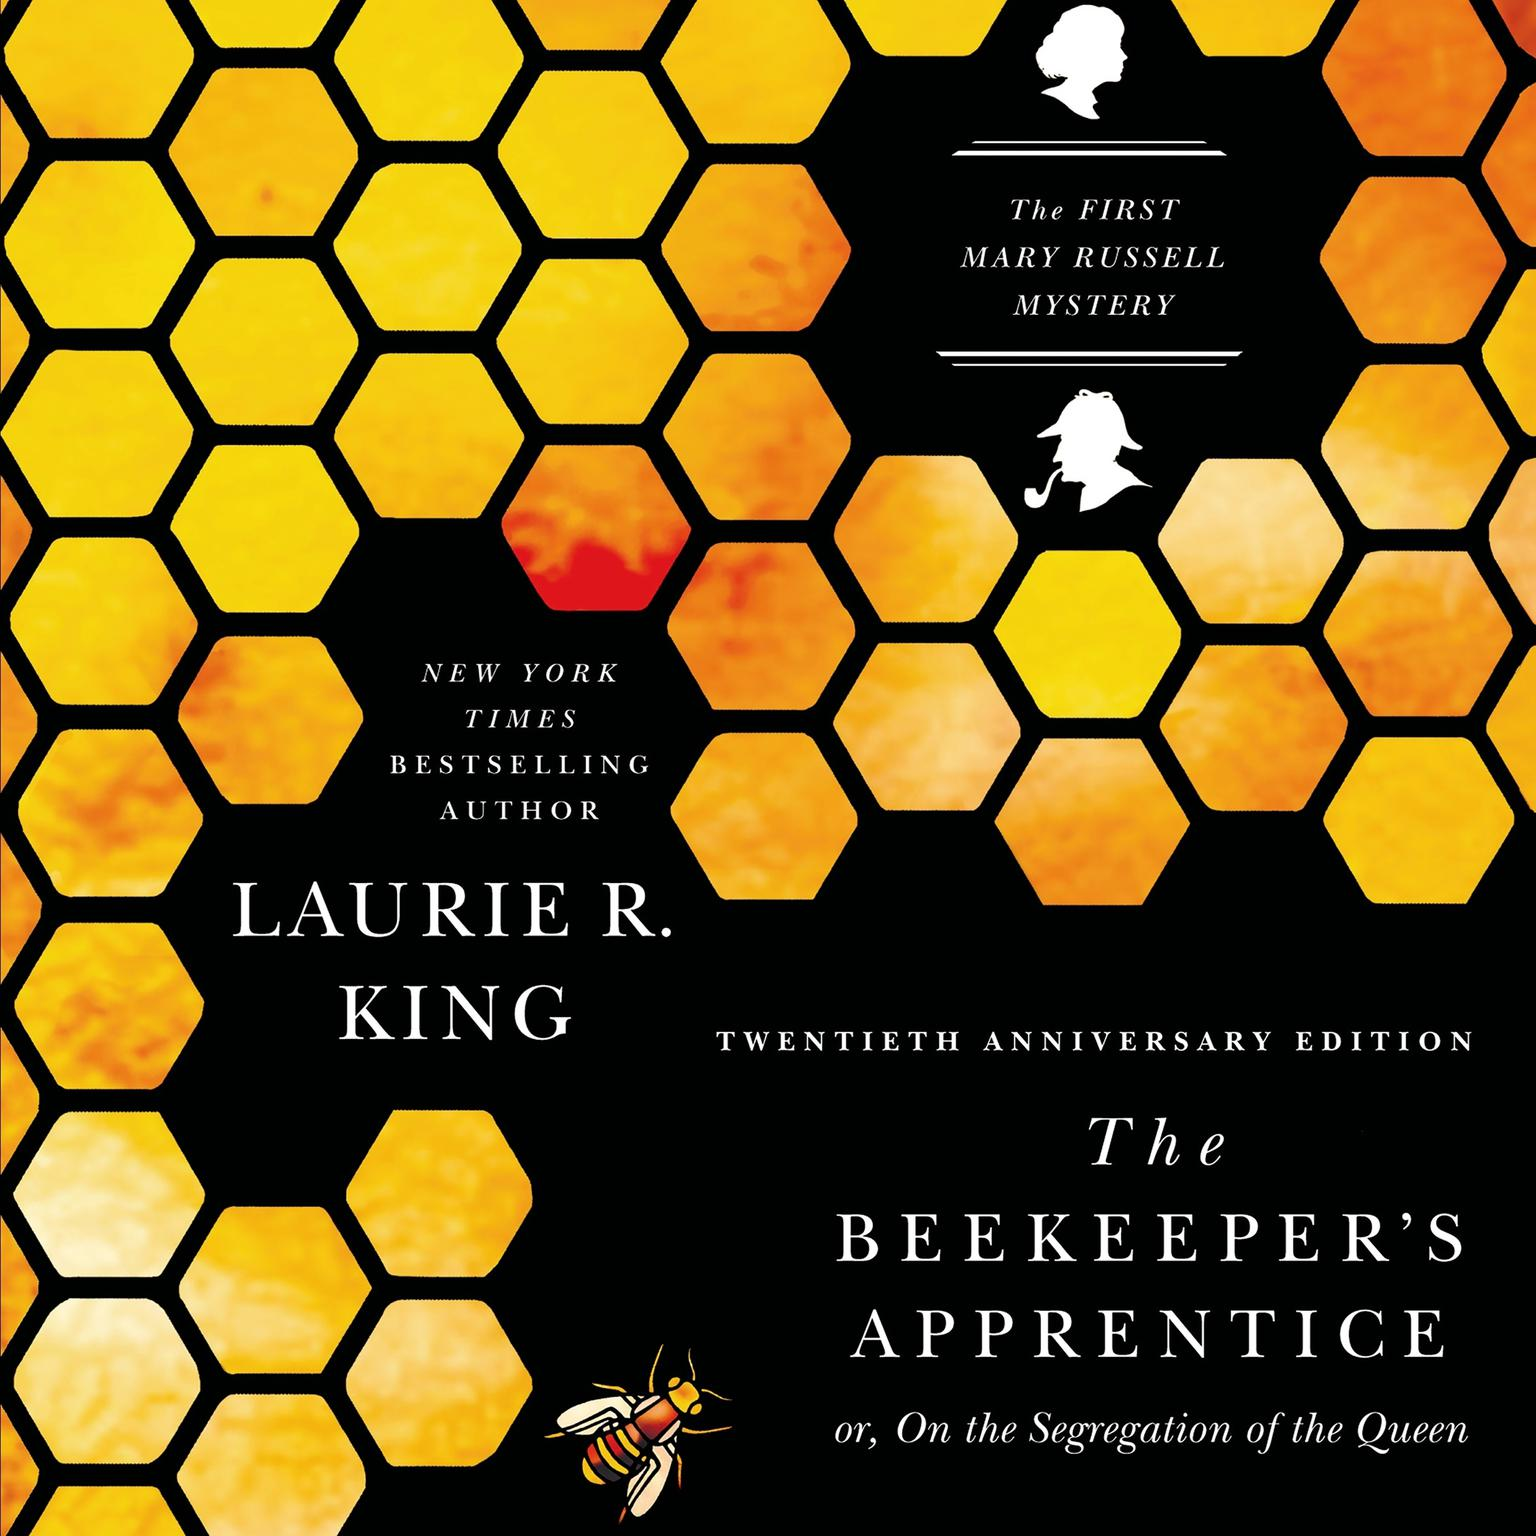 Printable The Beekeeper's Apprentice: or, On the Segregation of the Queen Audiobook Cover Art